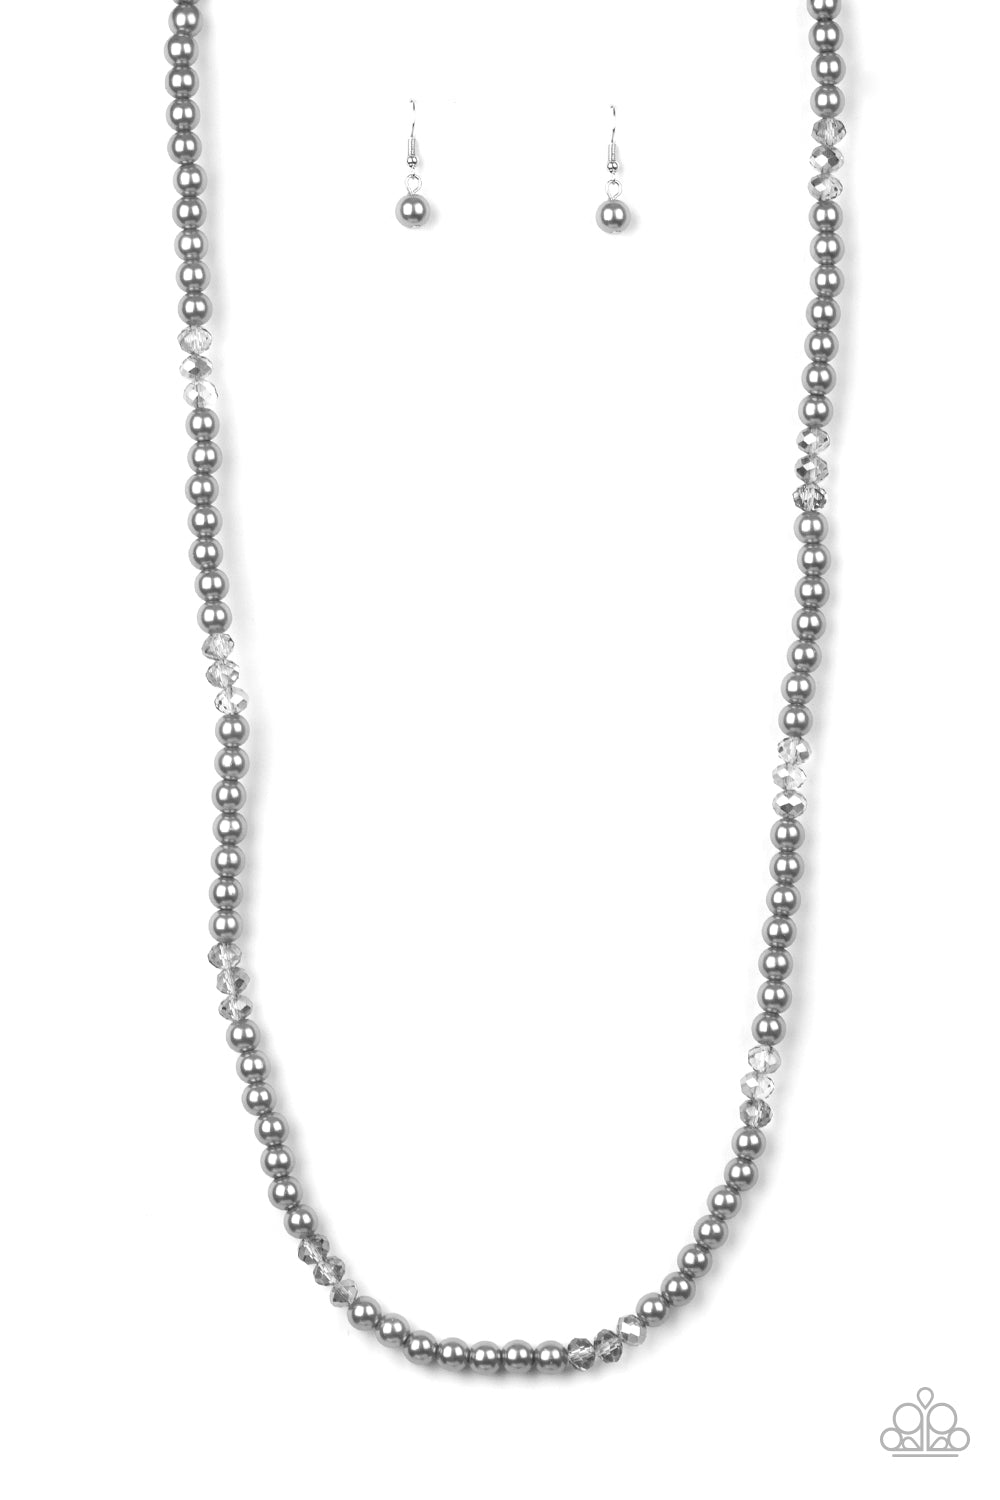 Girls Have More FUNDS Silver Necklace